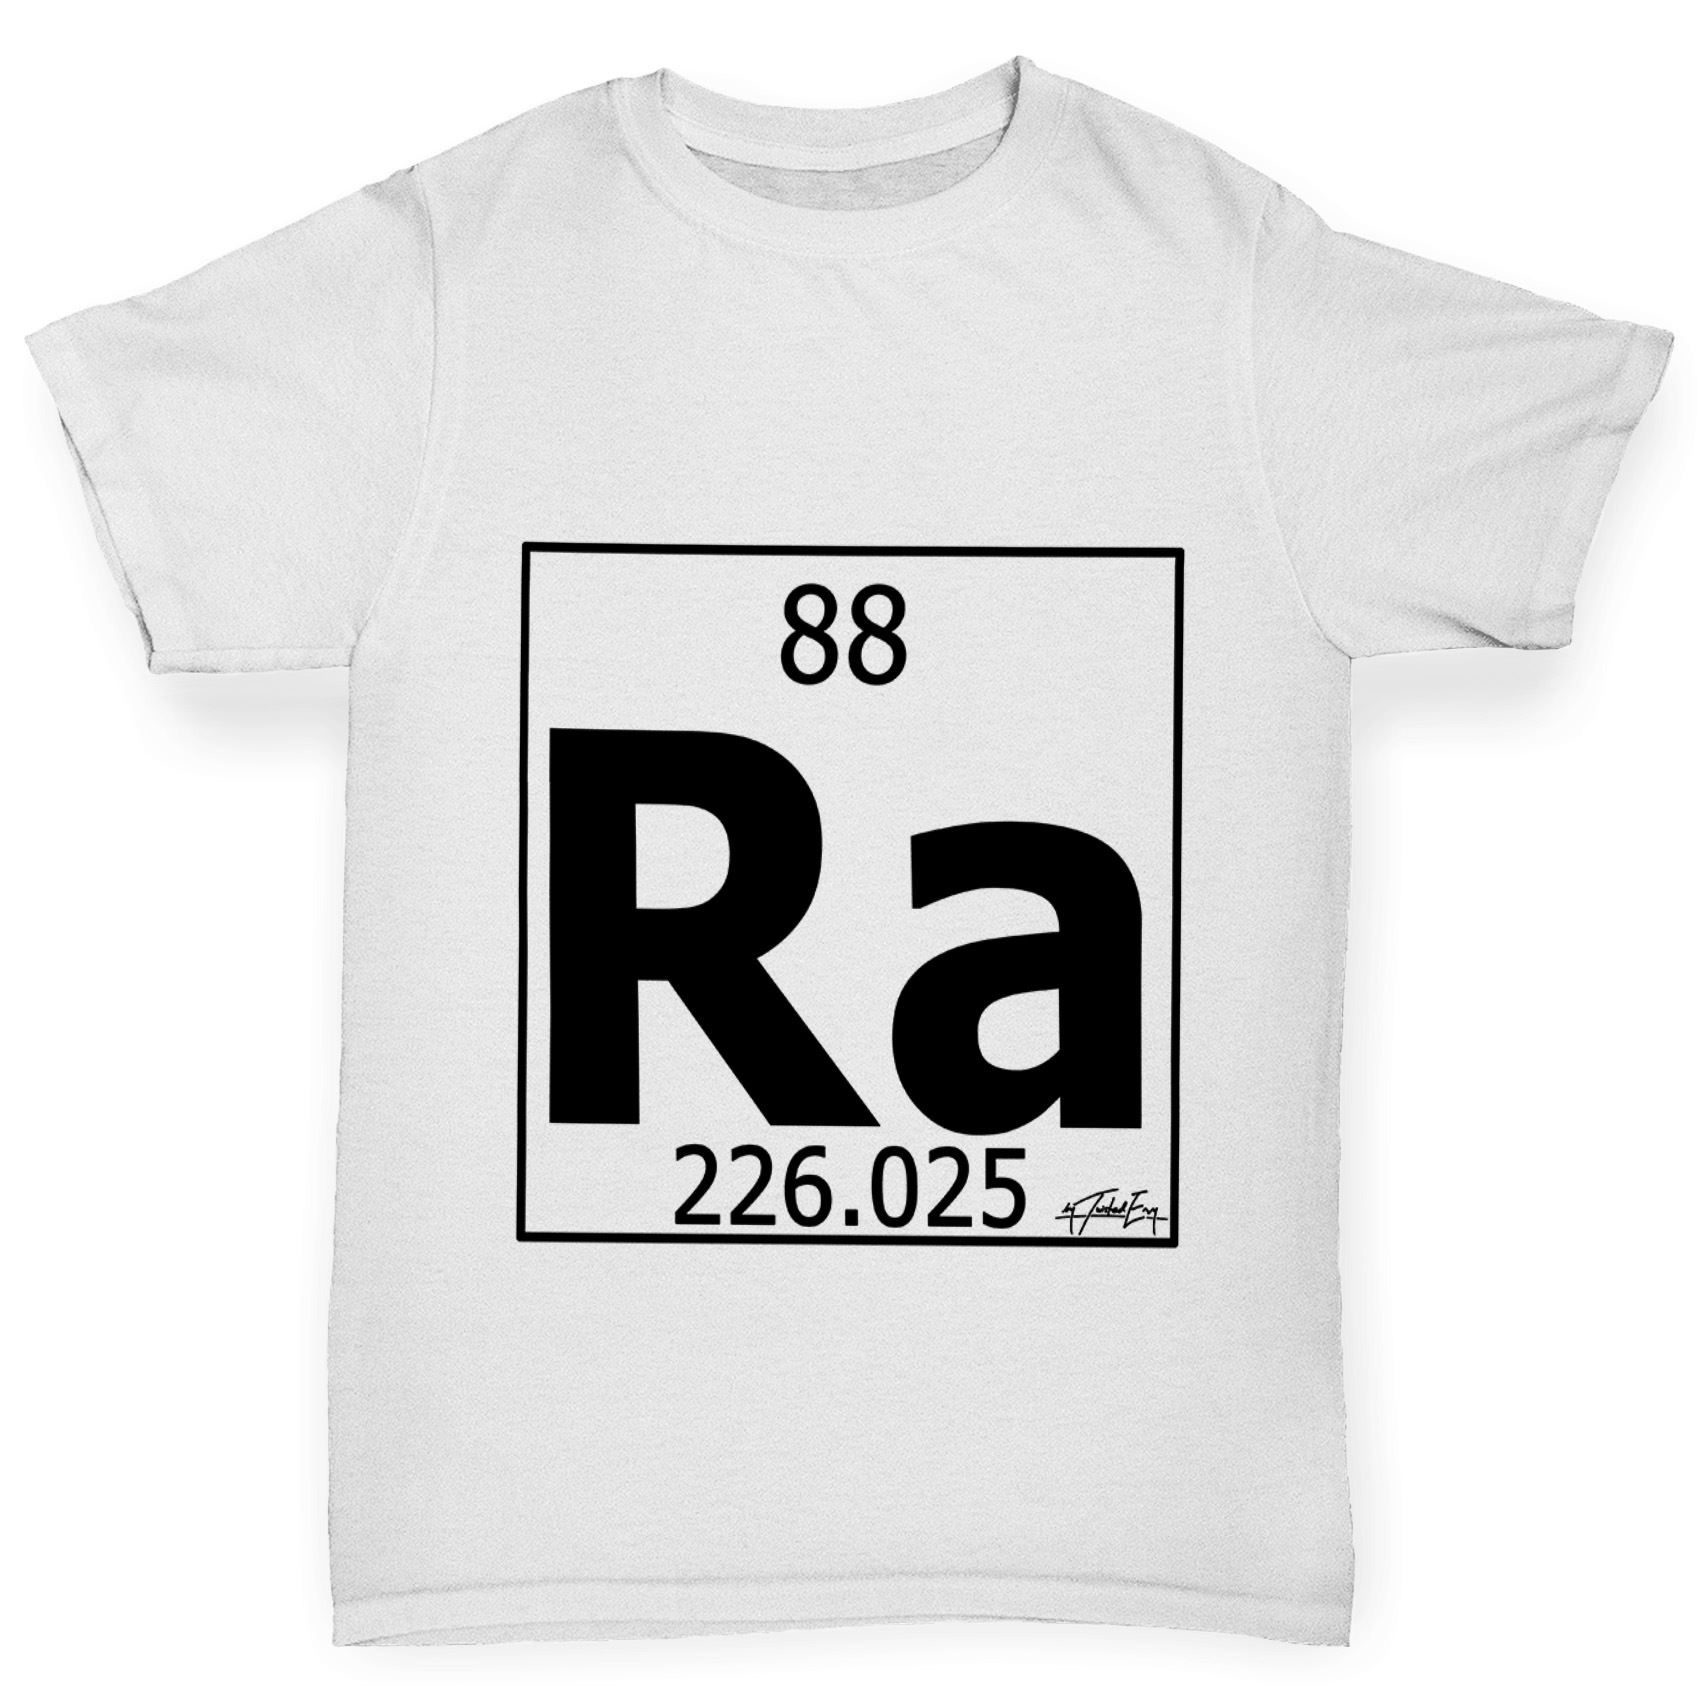 Twisted envy boys periodic table element ra radium t shirt ebay twisted envy boy 039 s periodic table element gamestrikefo Images